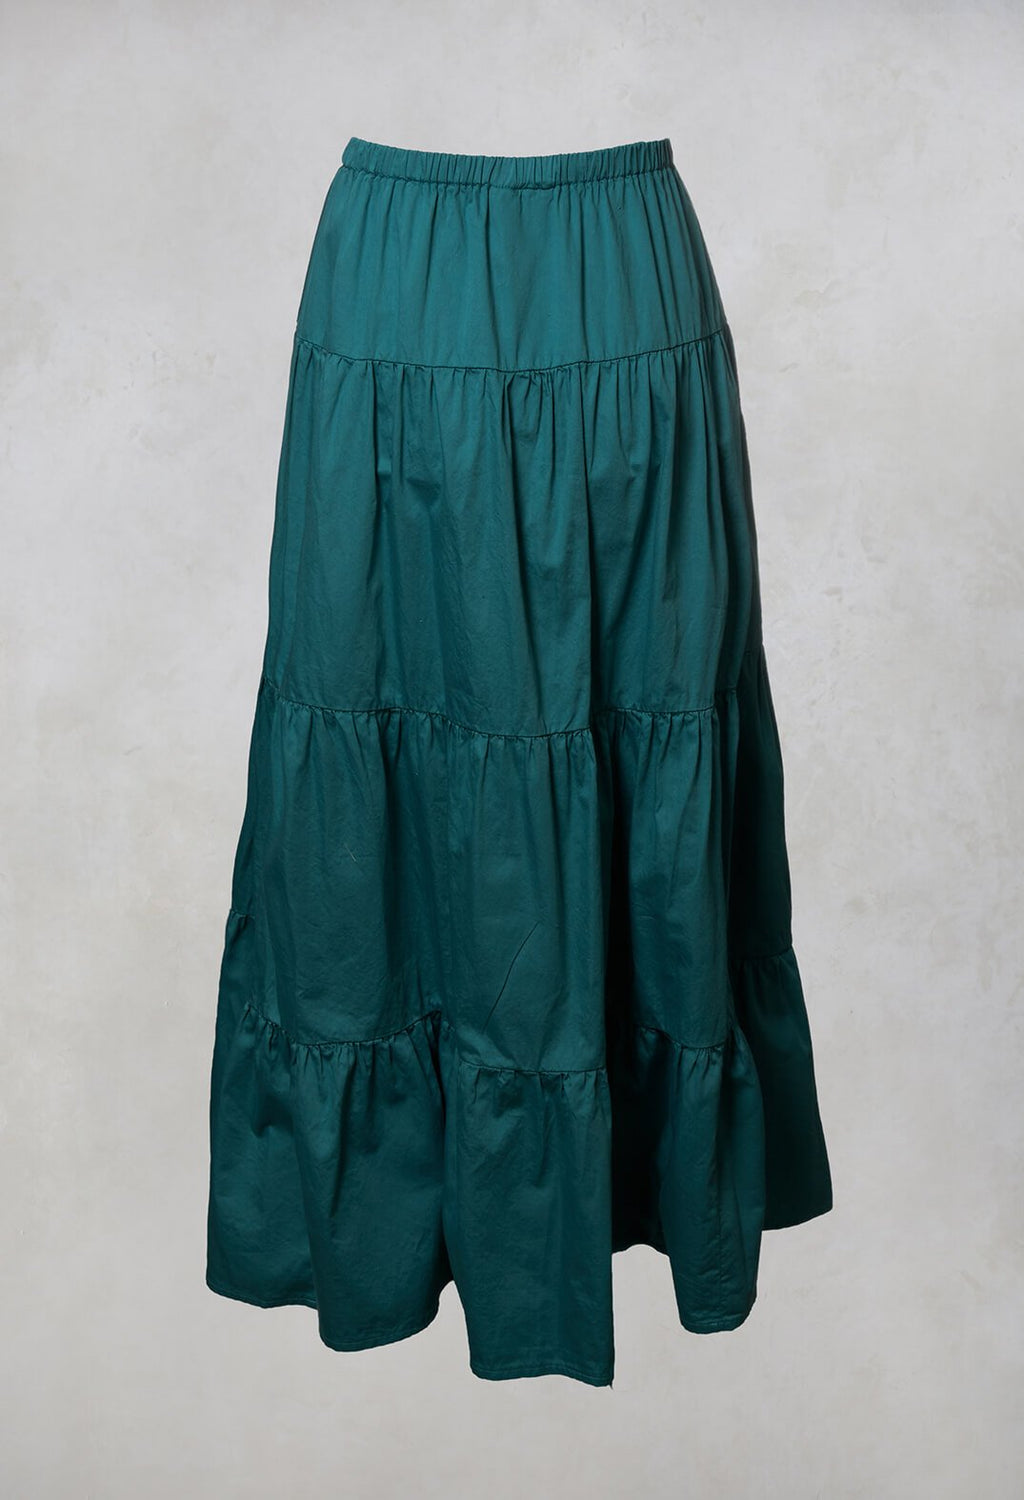 Sharm Maxi Gathered Skirt in Teal